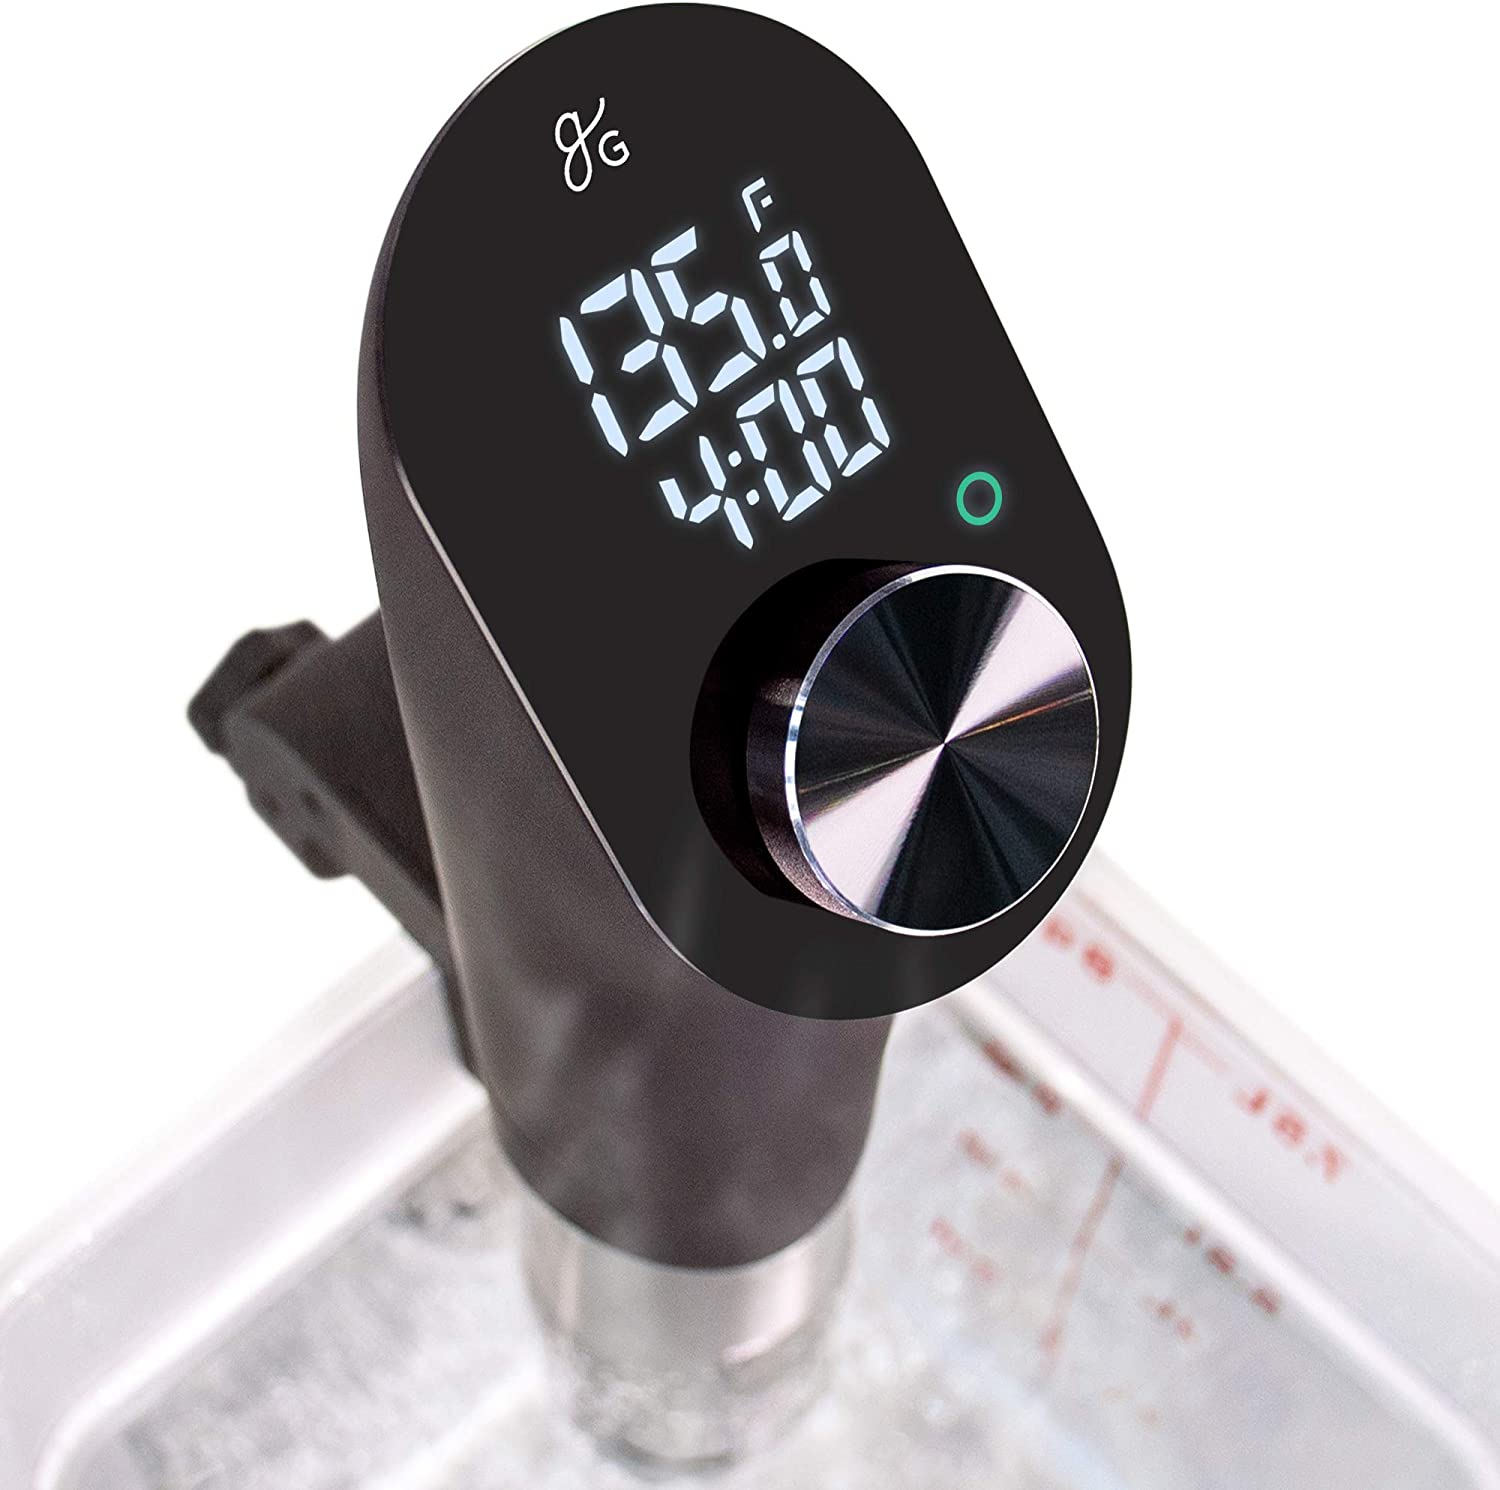 Greater Goods Sous Vide Precision Cooker, 1100 Watts, Silent Brushless Motor, Intuitive Controls, High Contrast Backlit LED, Fahrenheit and Celsius (Stainless Steel)